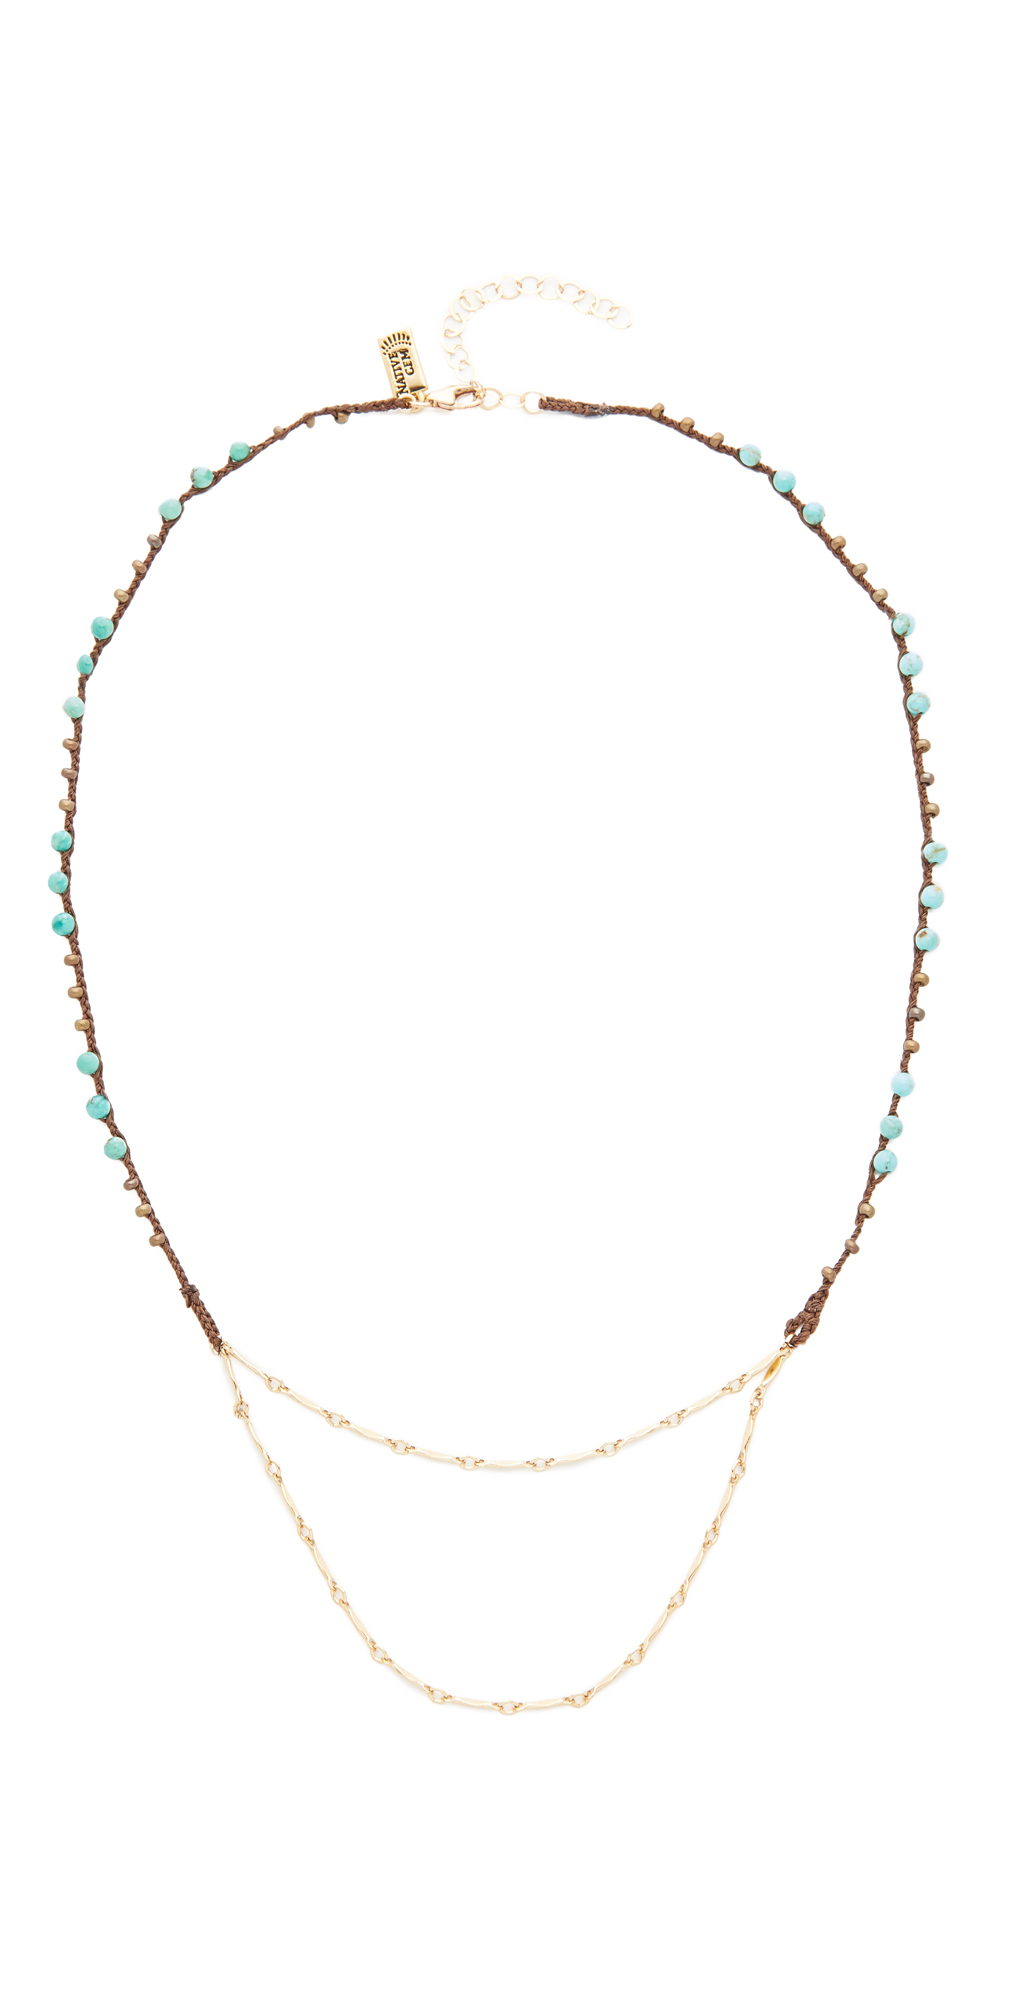 Native Gem Juno Drape Choker Necklace